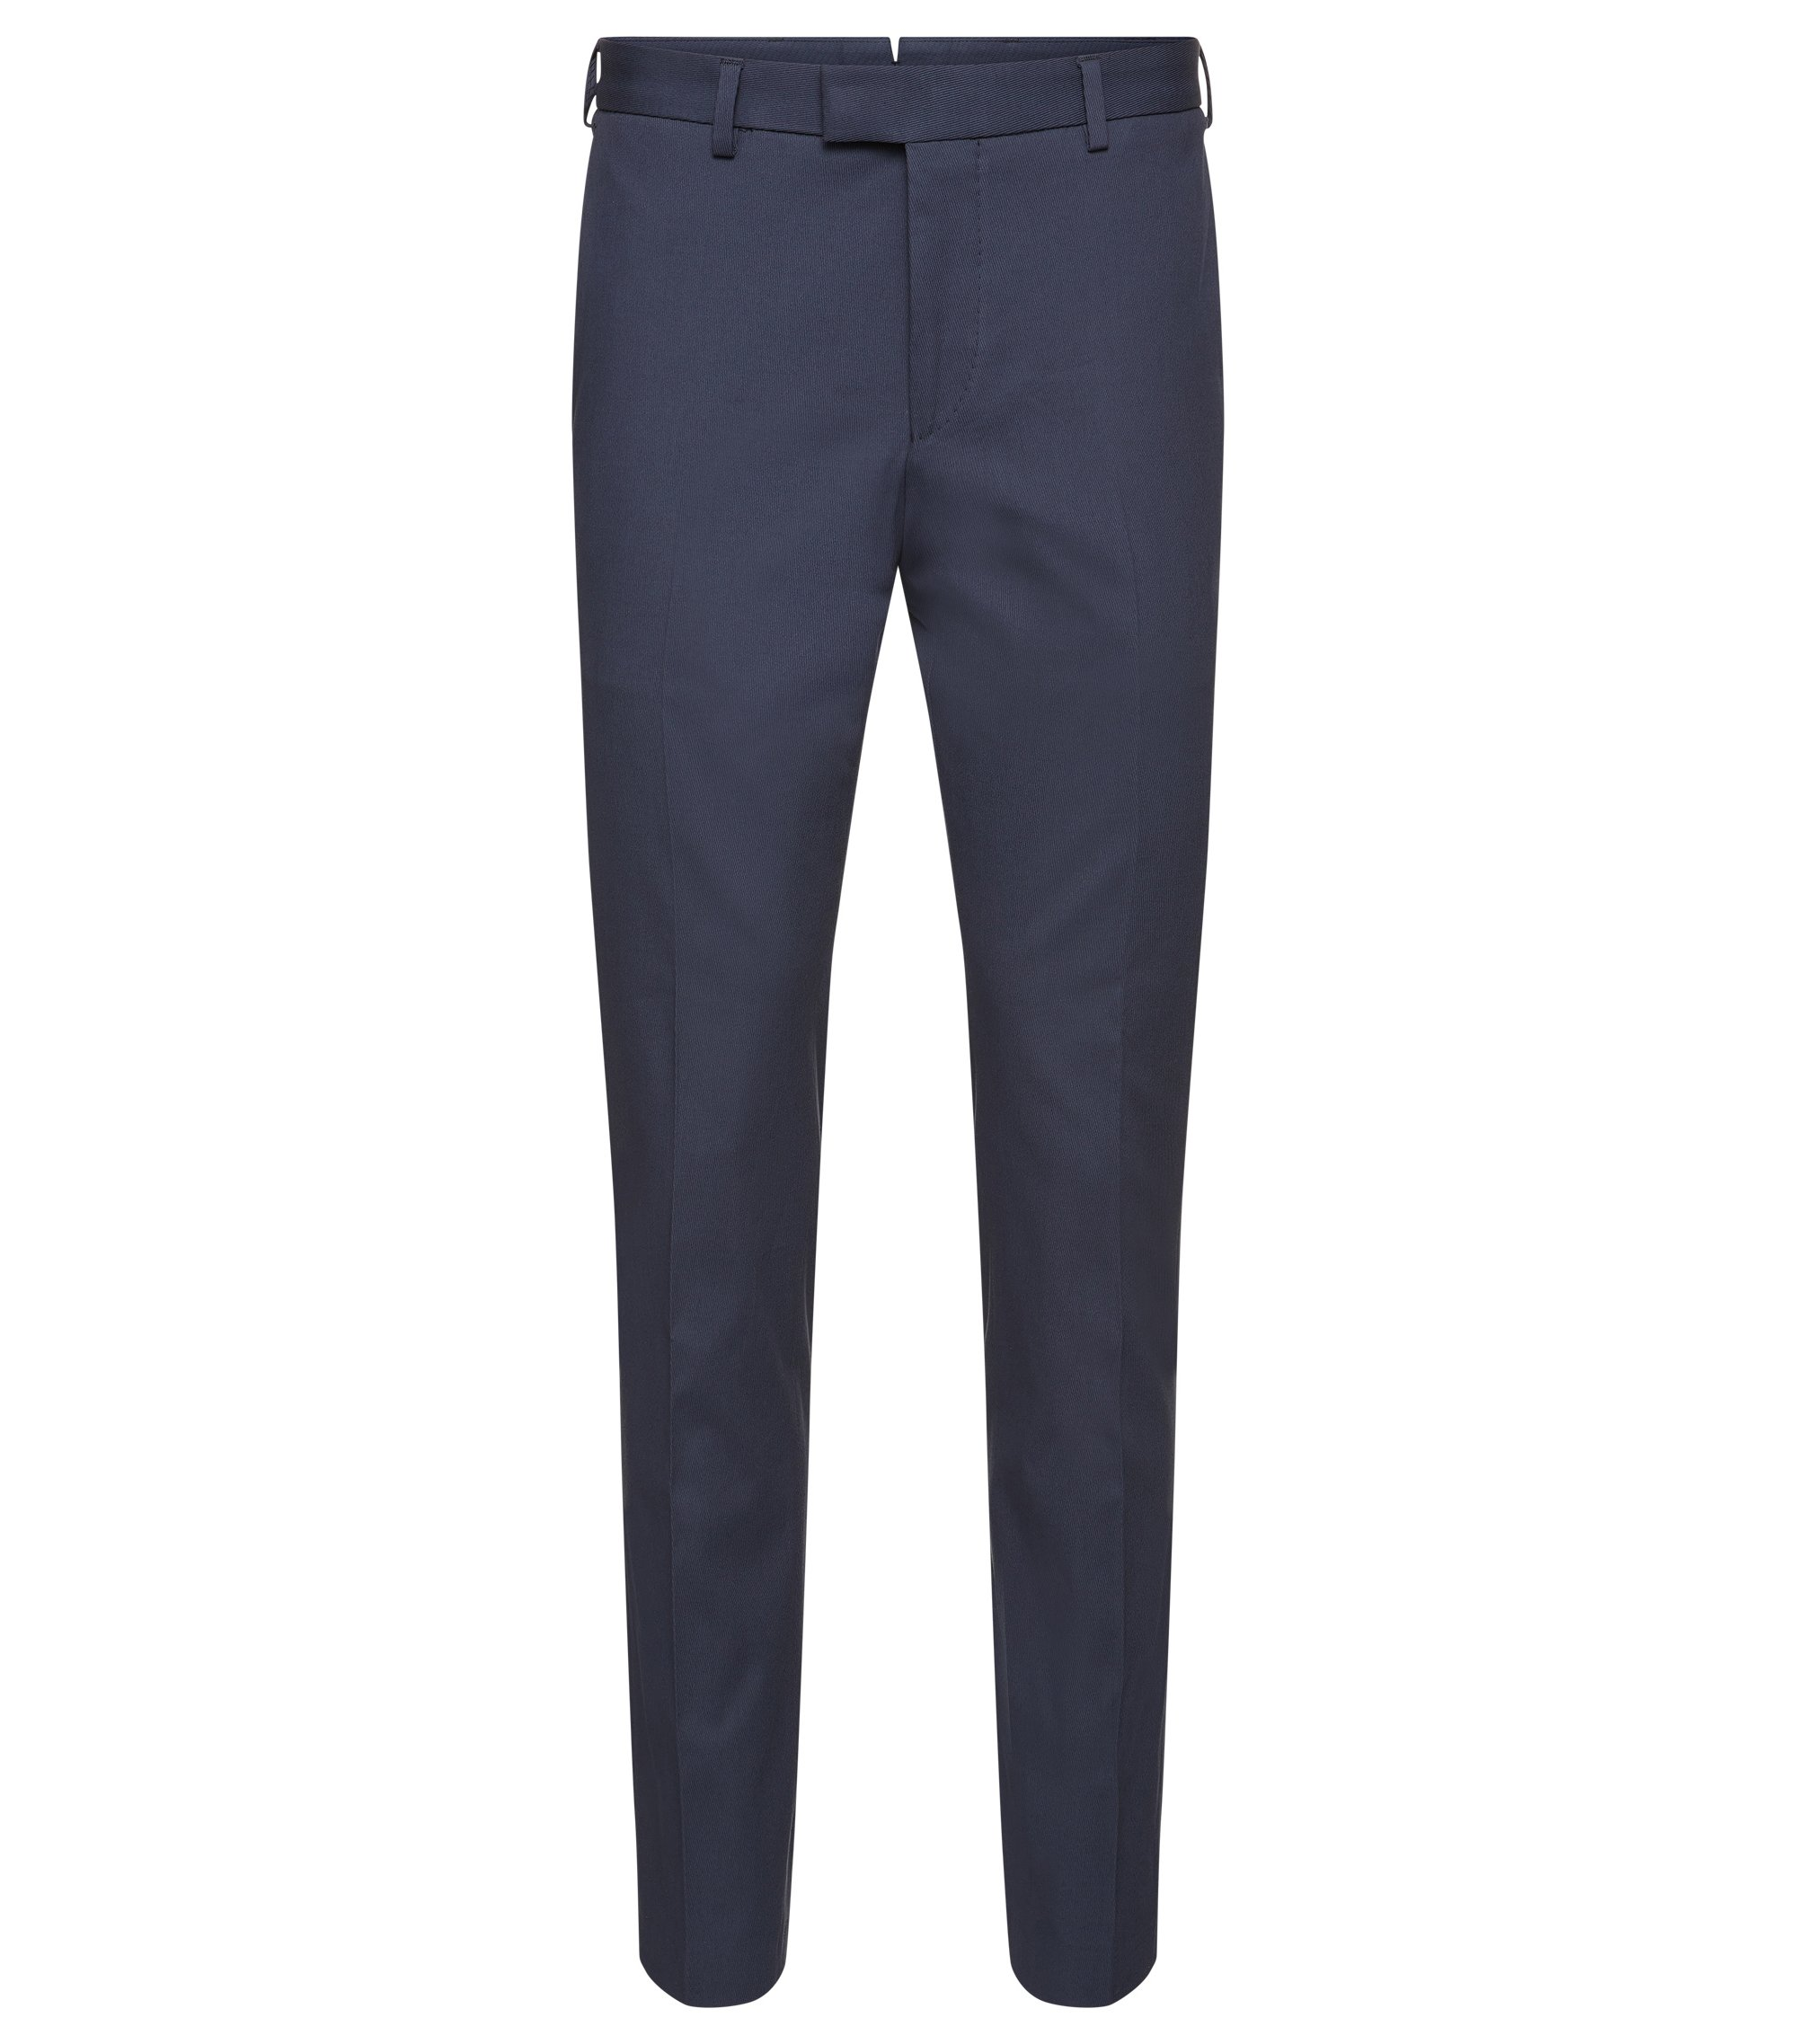 'T-Bak' | Slim Fit, Italian Stretch Cotton Dress Pants, Open Blue